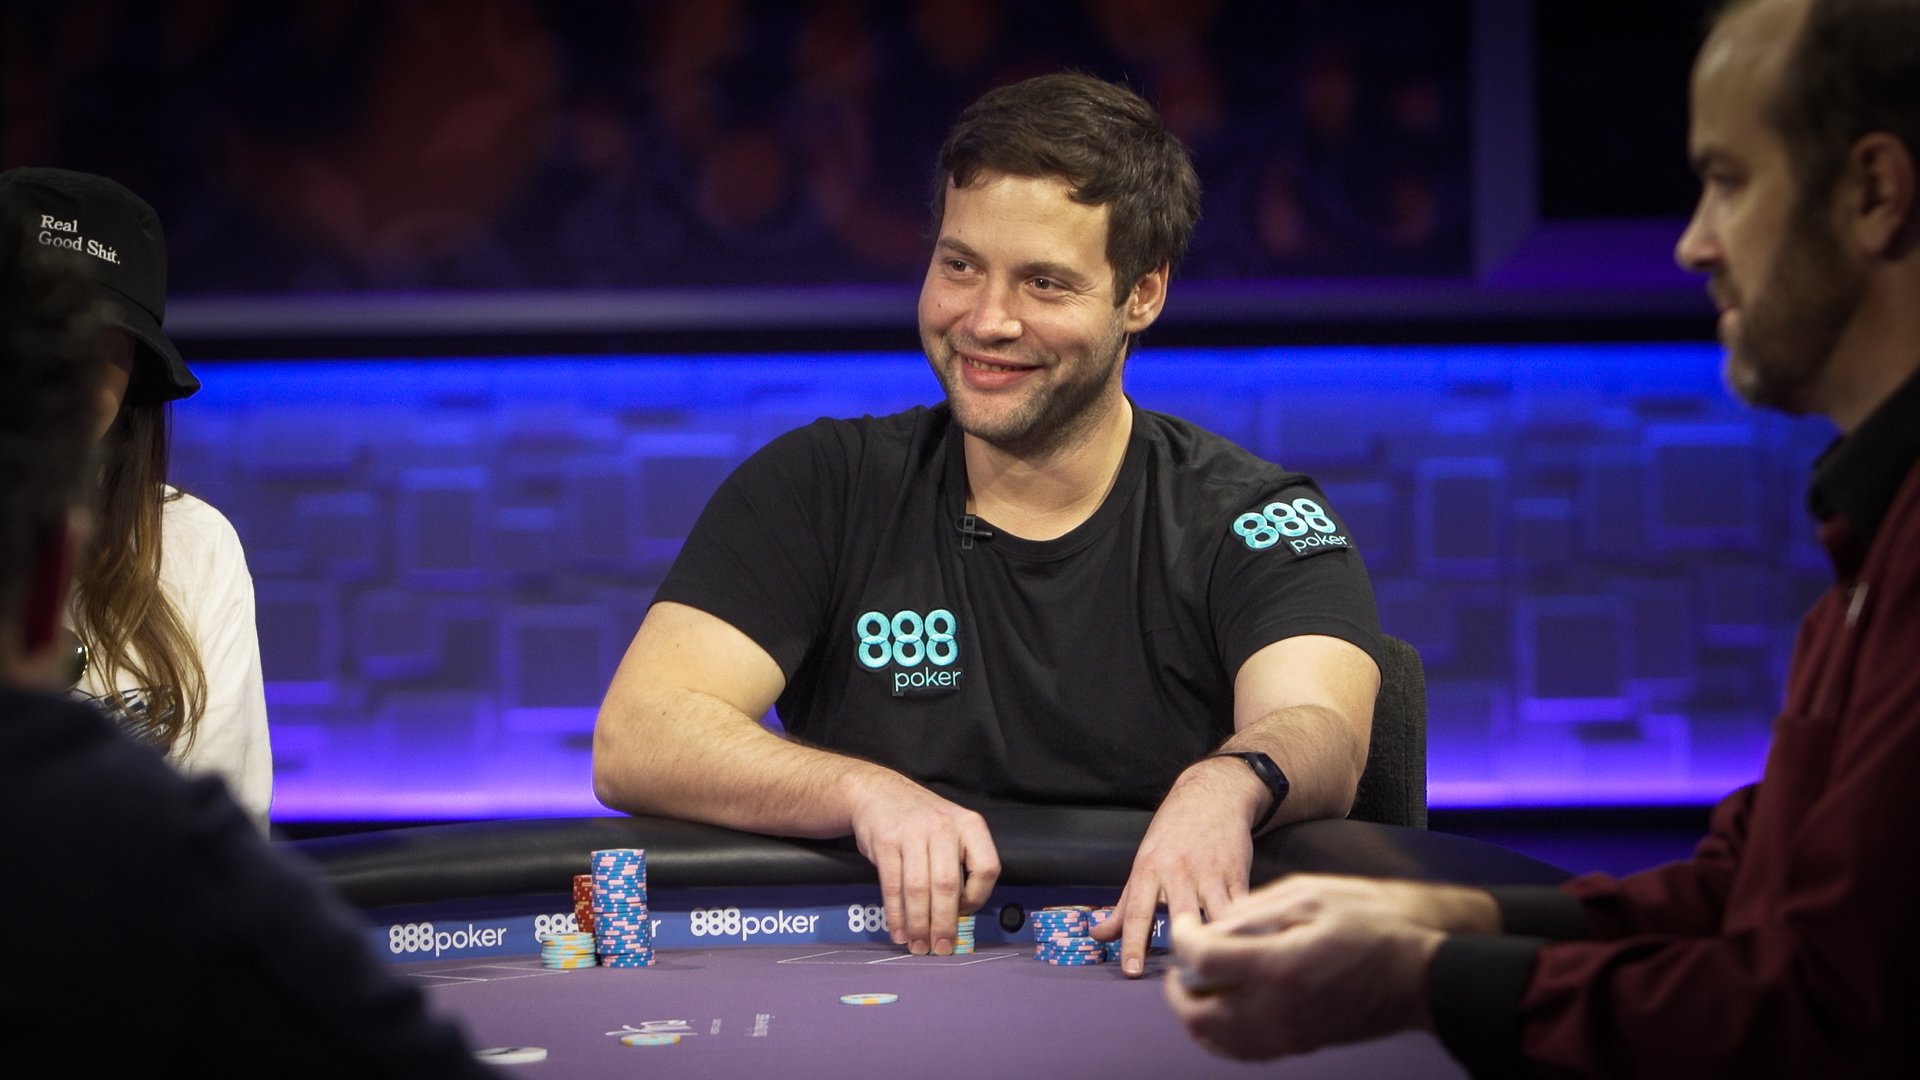 """Jul 26, · Over the next few weeks, as the reboot of """"Poker After Dark"""" gets closer and closer, Poker Central will prepare poker after fans for the return of PAD in a variety of ways.From episode recaps from past seasons, which are currently streaming on PokerGO, to exclusive interviews with some of poker's biggest names, Poker Central is here to get you ready for brand new episodes of """"Poker."""